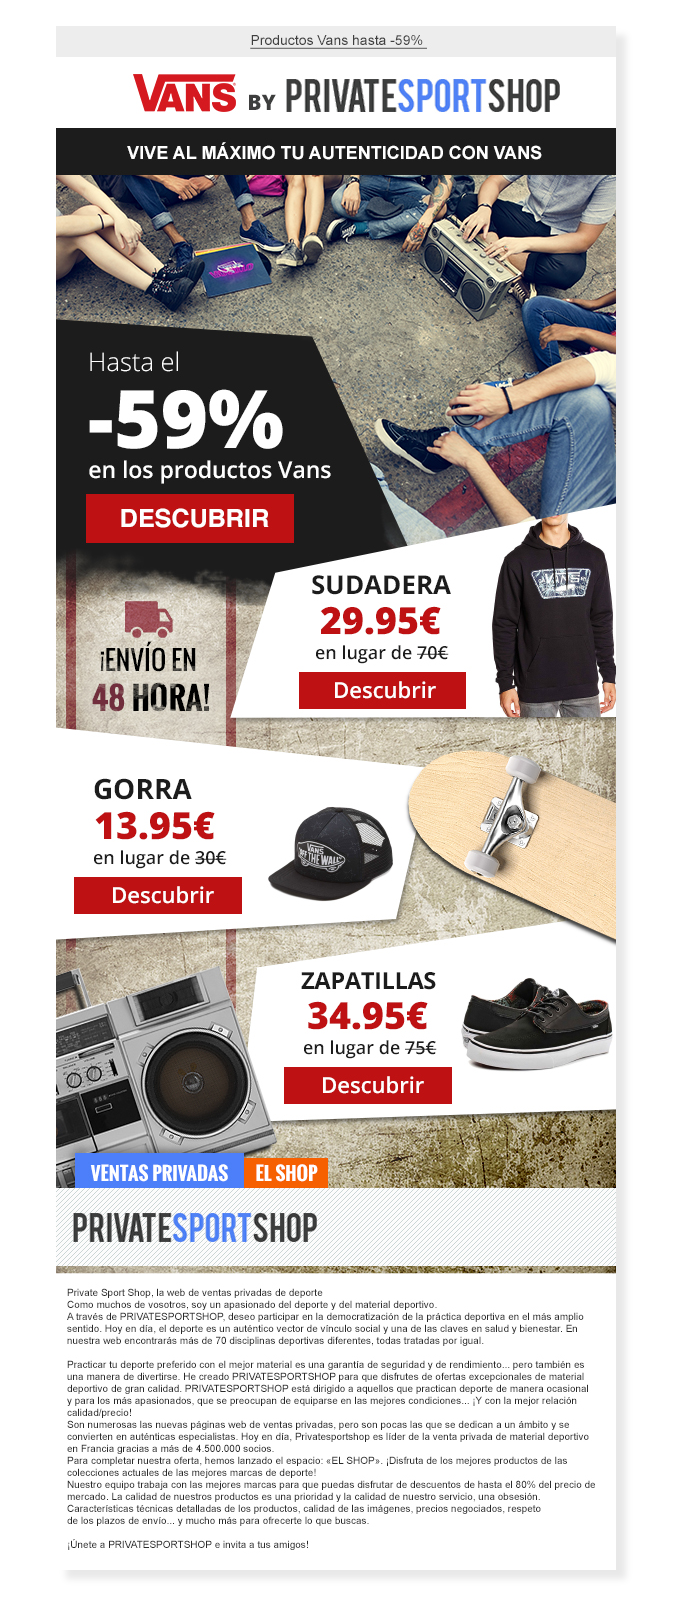 Email Private Sport Shop for Vans